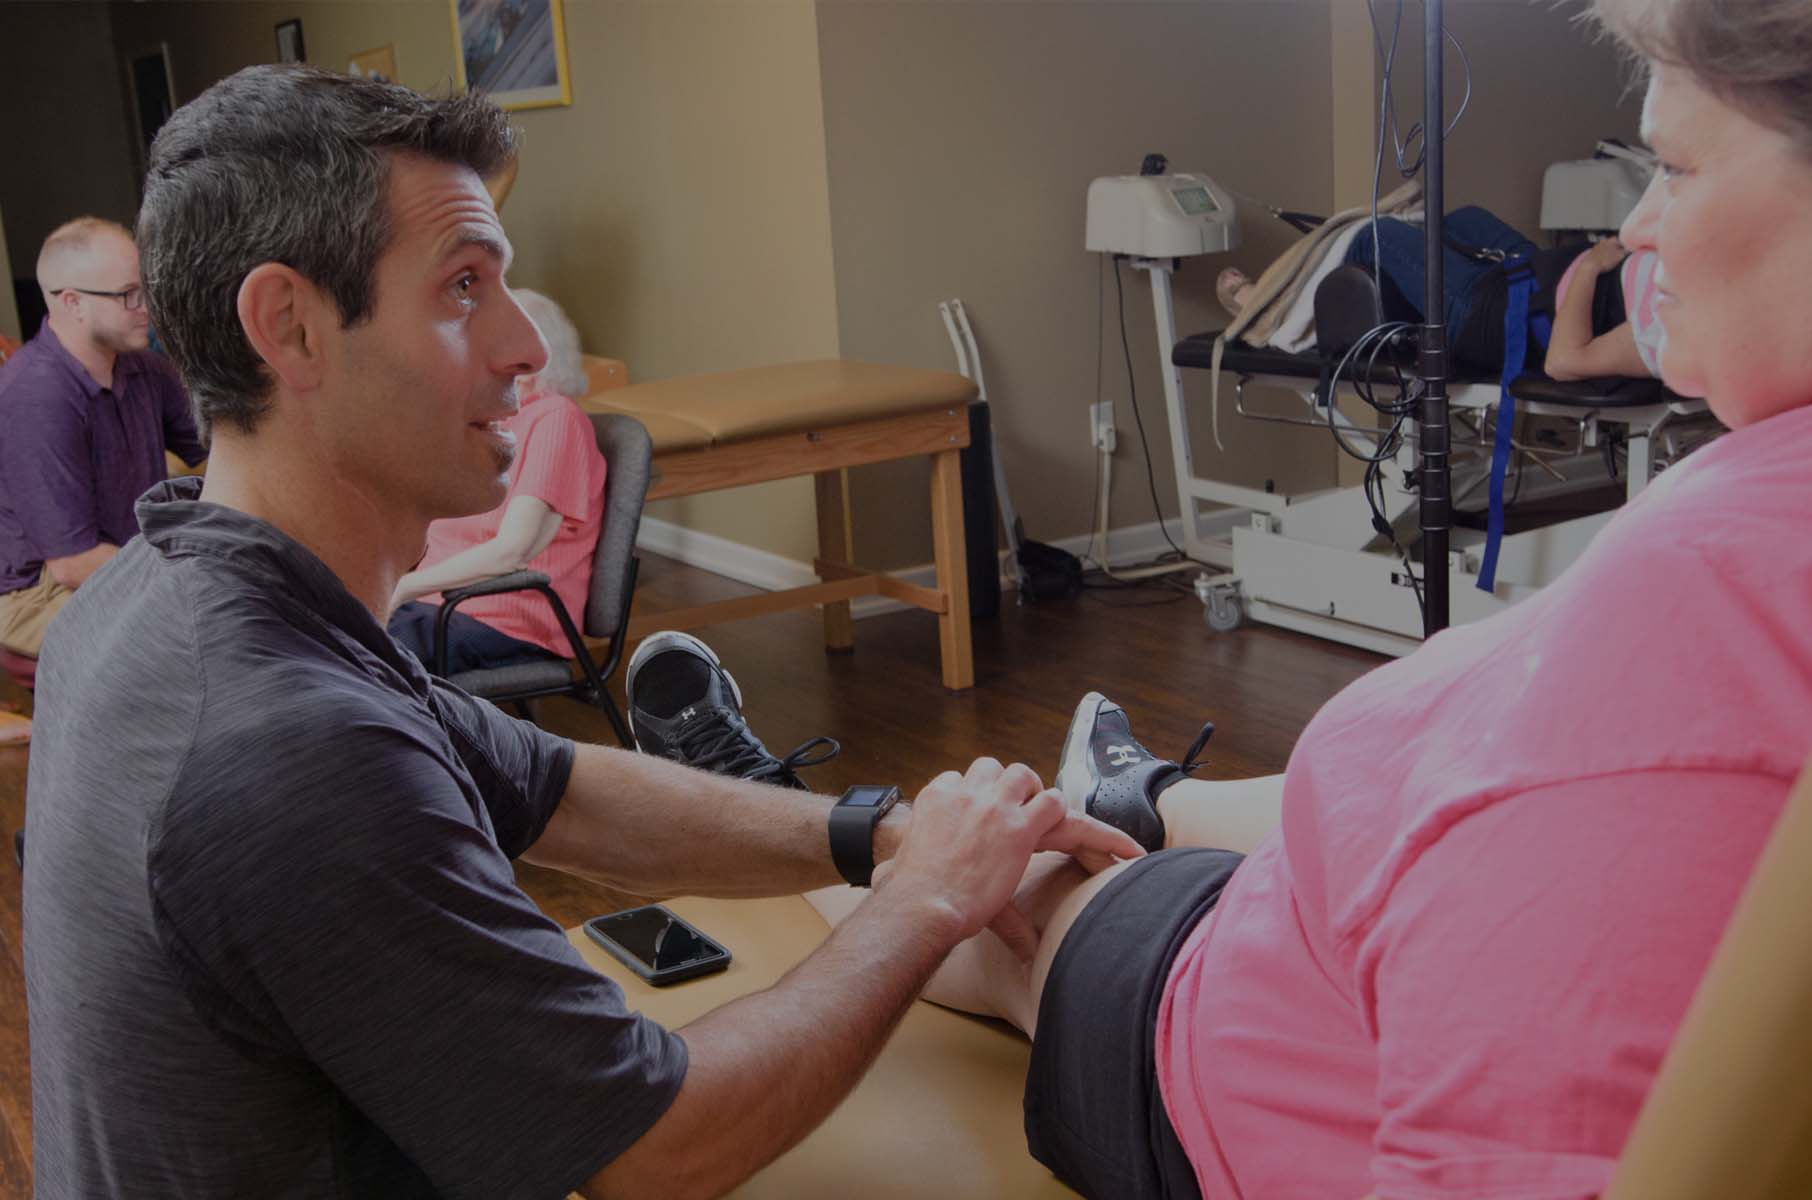 Pullano working with patient